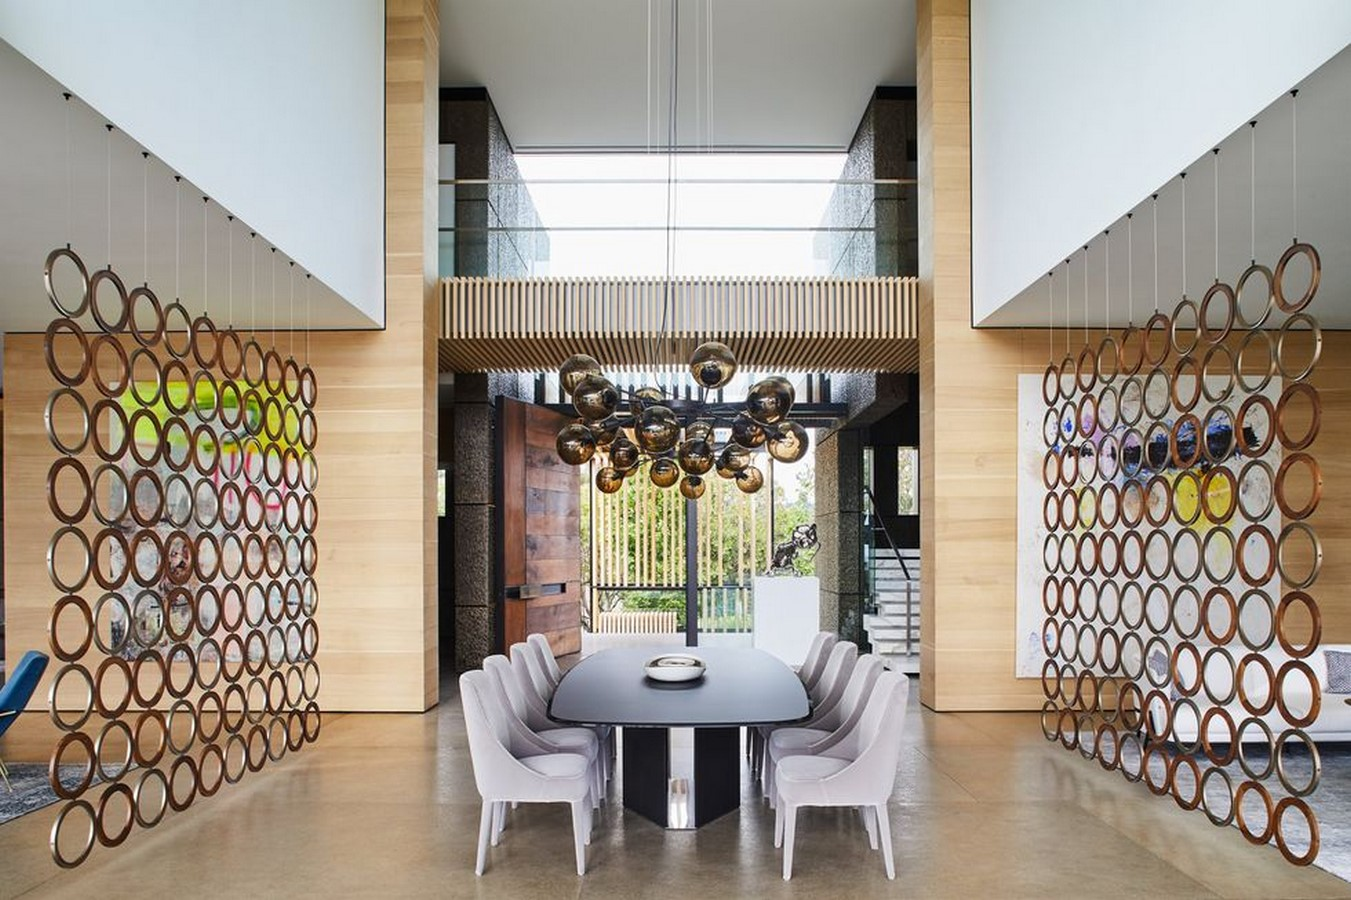 10 Dining rooms ideas that can enhance the space - Sheet21